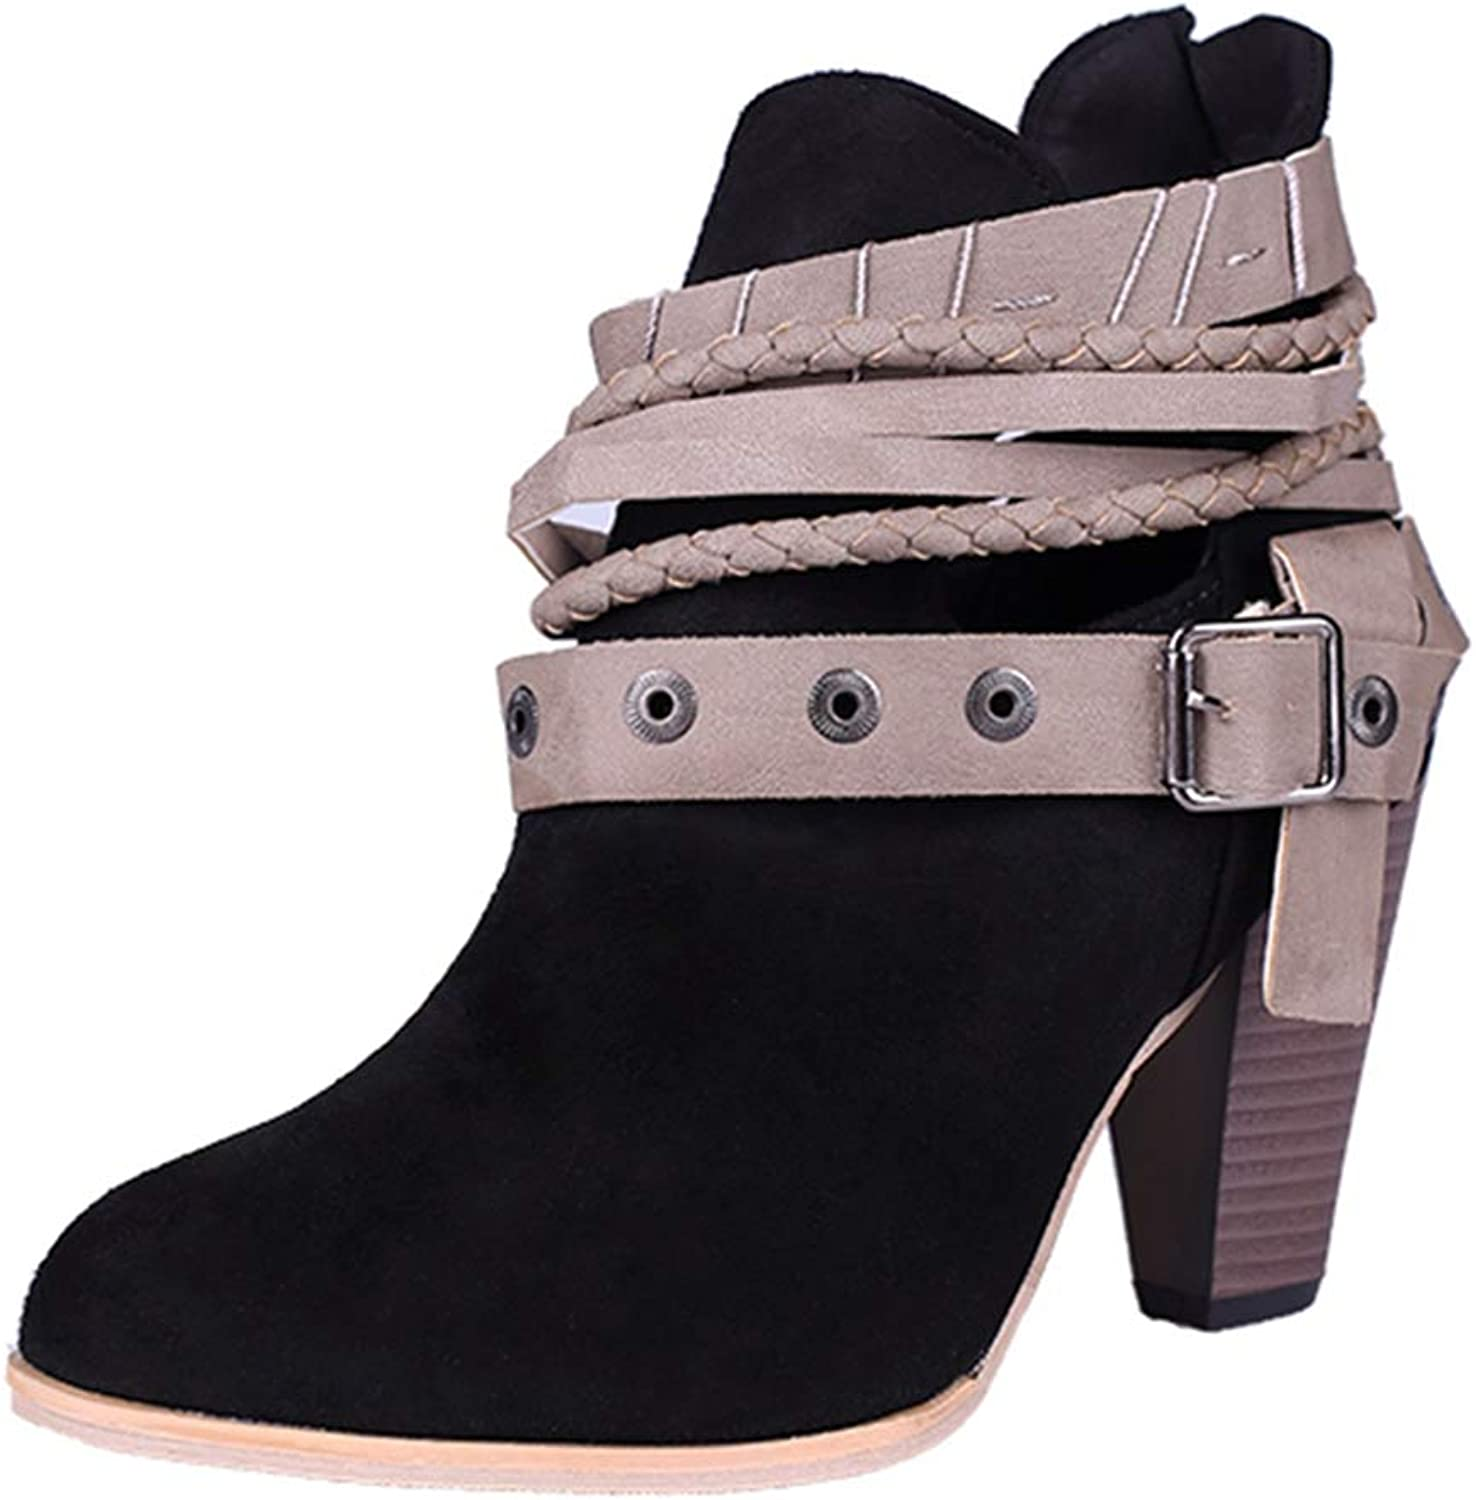 GIY Women's Close Toe Buckle Strap Stacked Heel Ankle Boots Suede Platform Zip Bootie Martin Short Boots